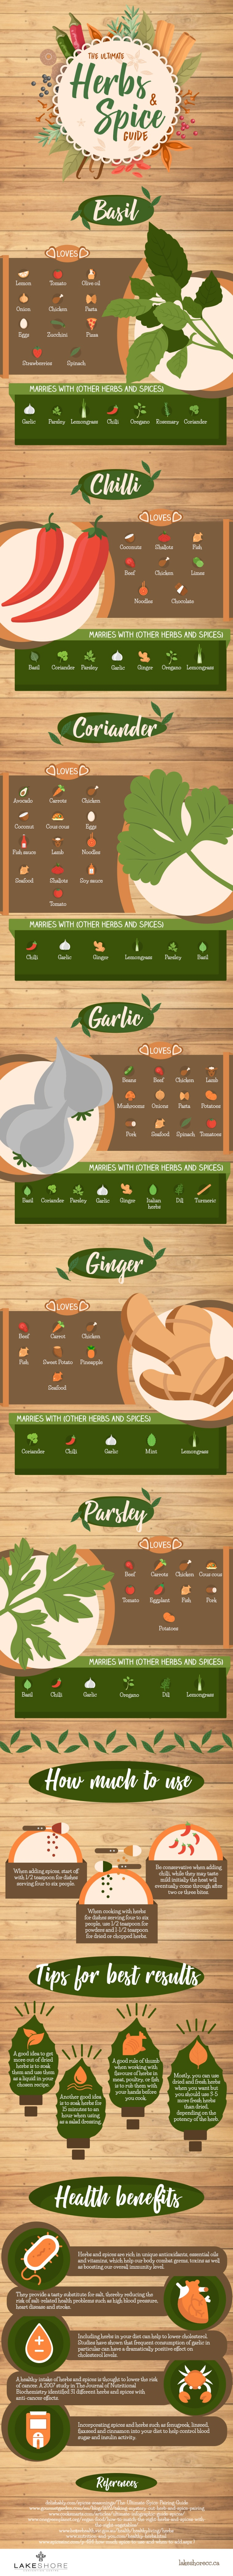 The Ultimate Herbs & Spice Guide [Infographic]   ecogreenlove